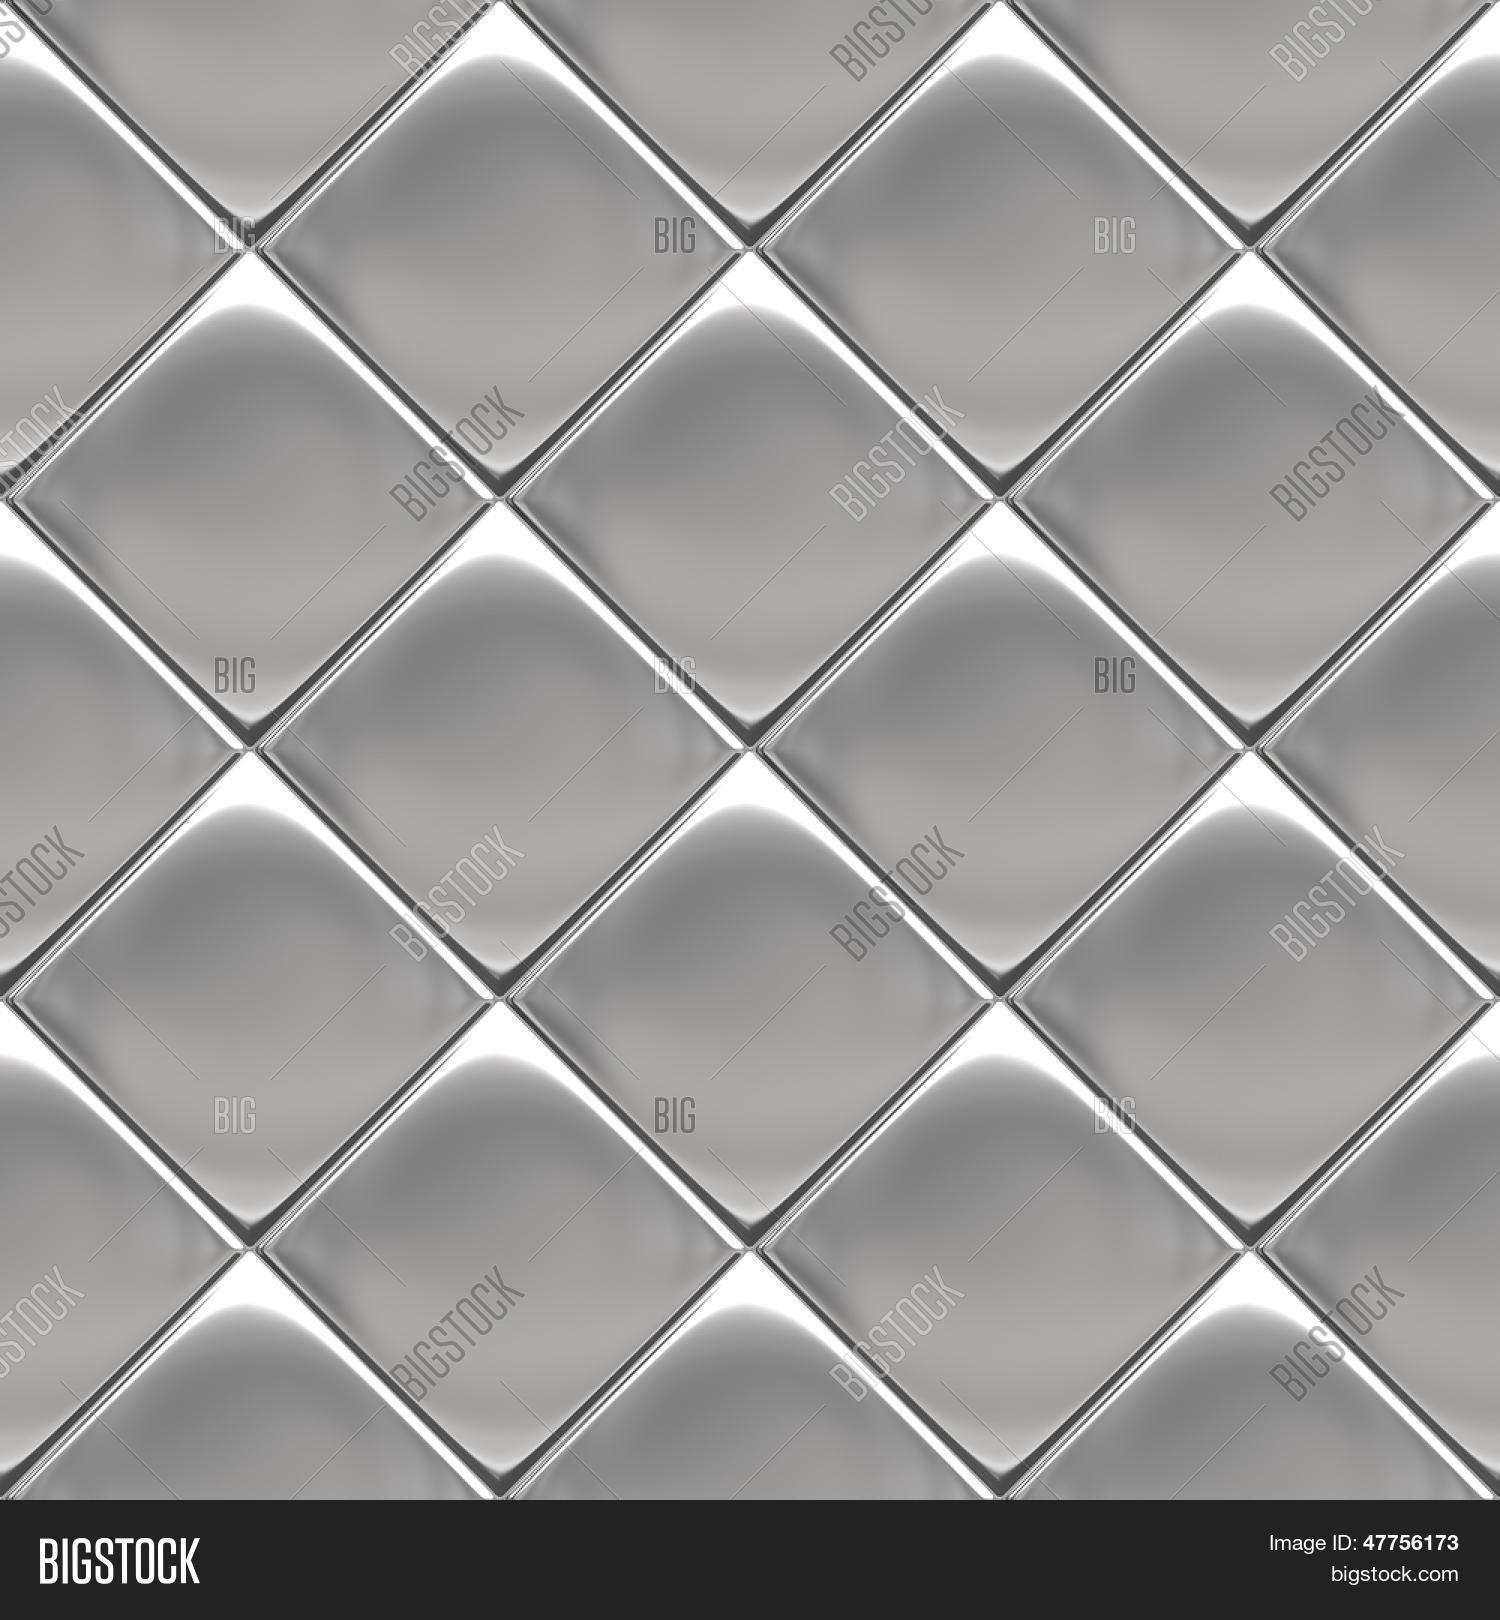 Free photo: Checked Metal Background - Rough, Metalic, Shapes - Free ...